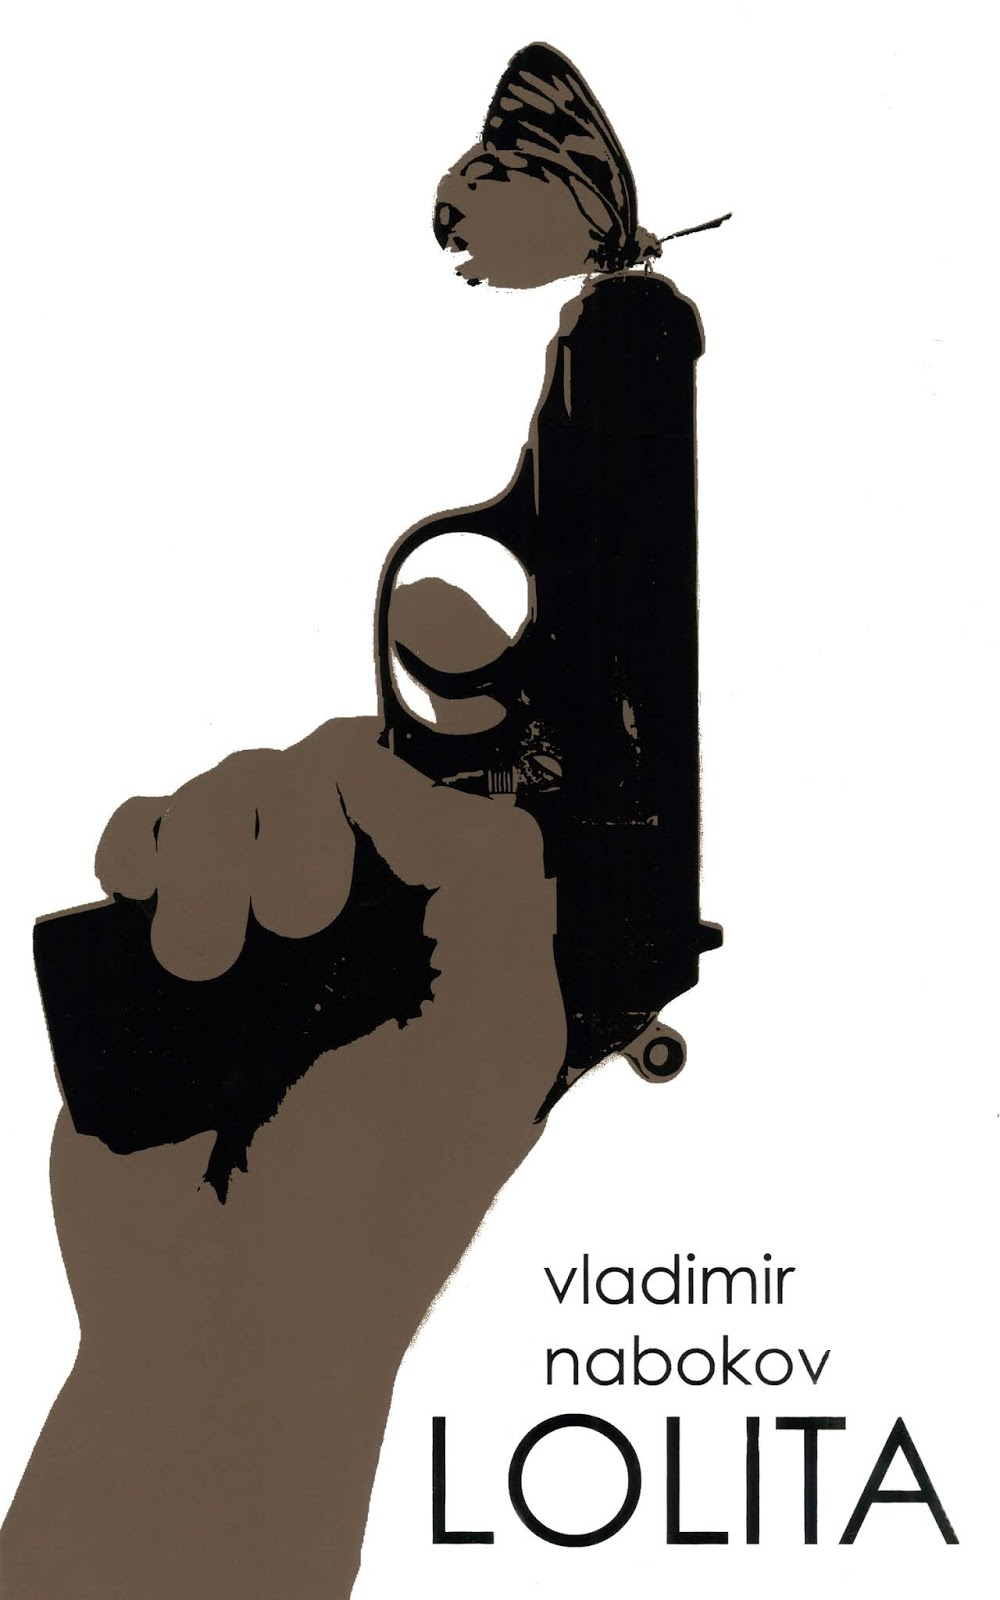 Book cover for Vladimir Nabokov's Lolita in the South Manchester, Chorlton, and Didsbury book group